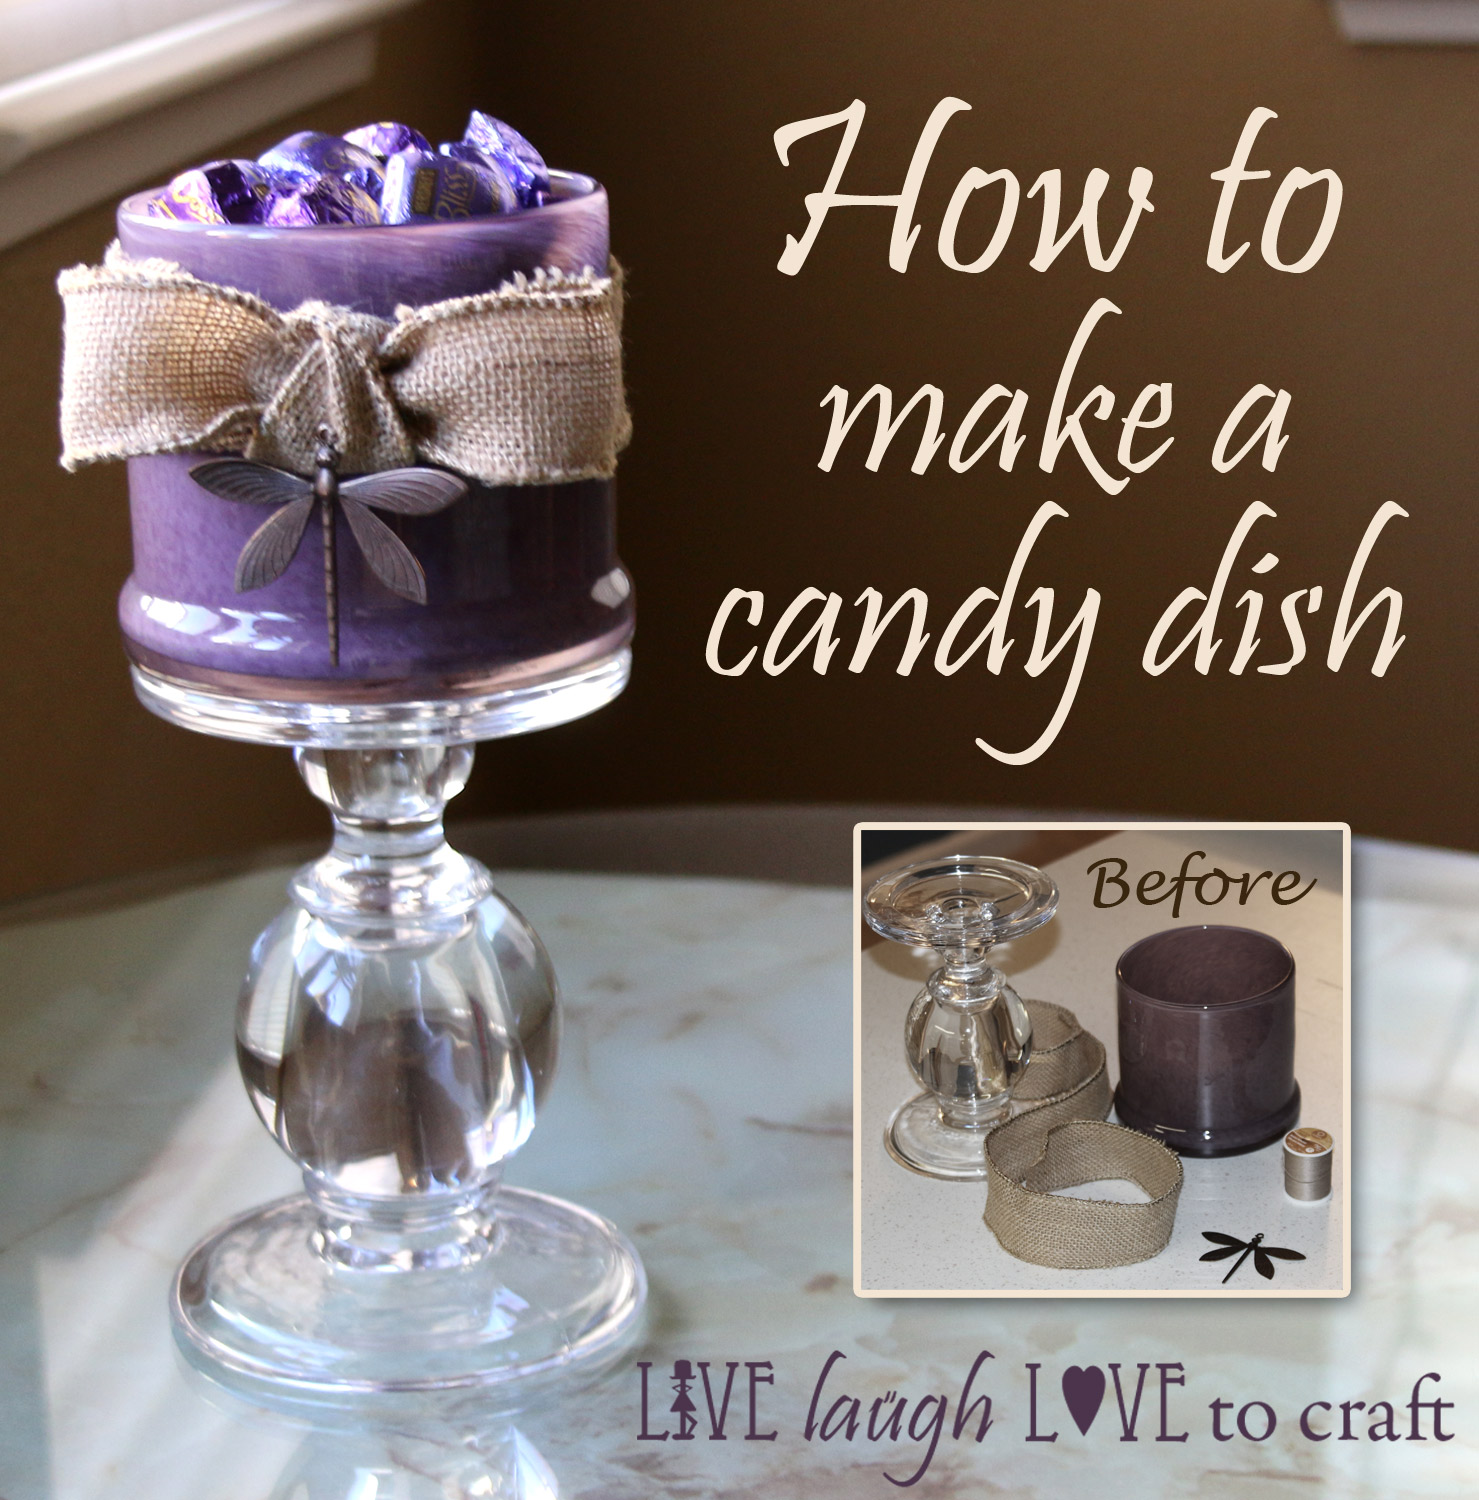 Diy Candy Dish Live Laugh Love To Craft